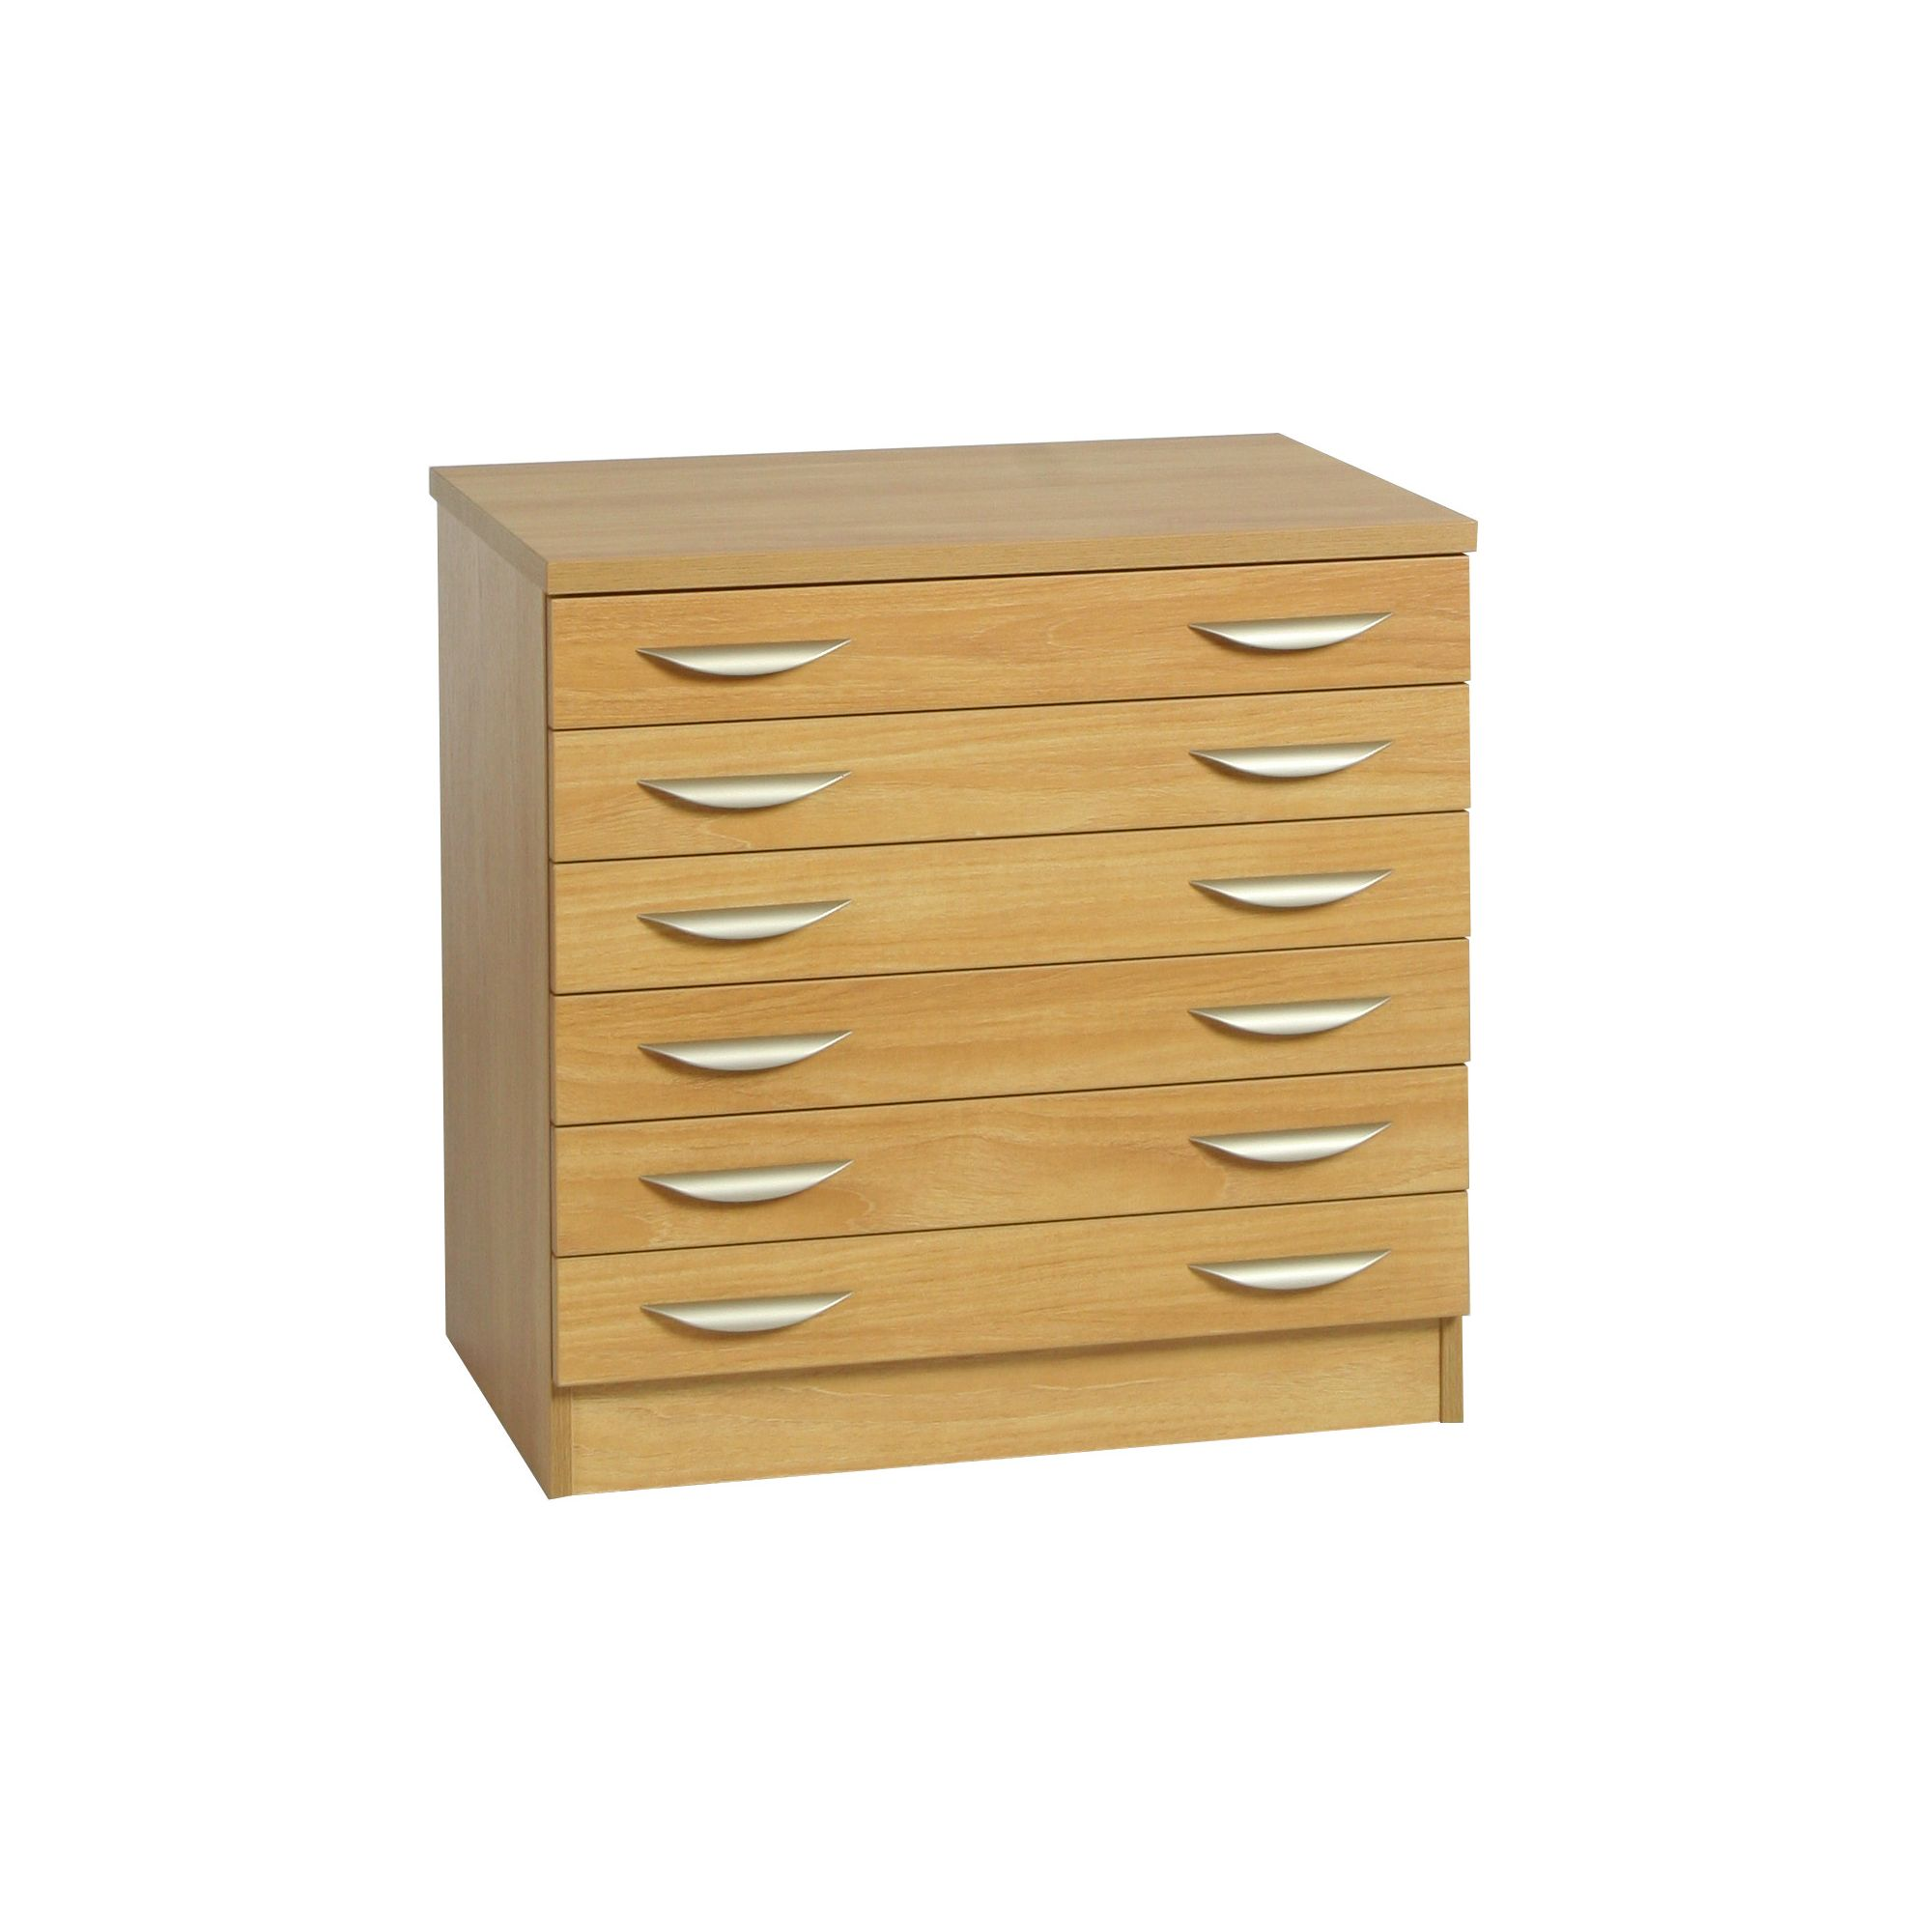 R White Cabinets Six Drawer Wooden Unit - Warm Oak